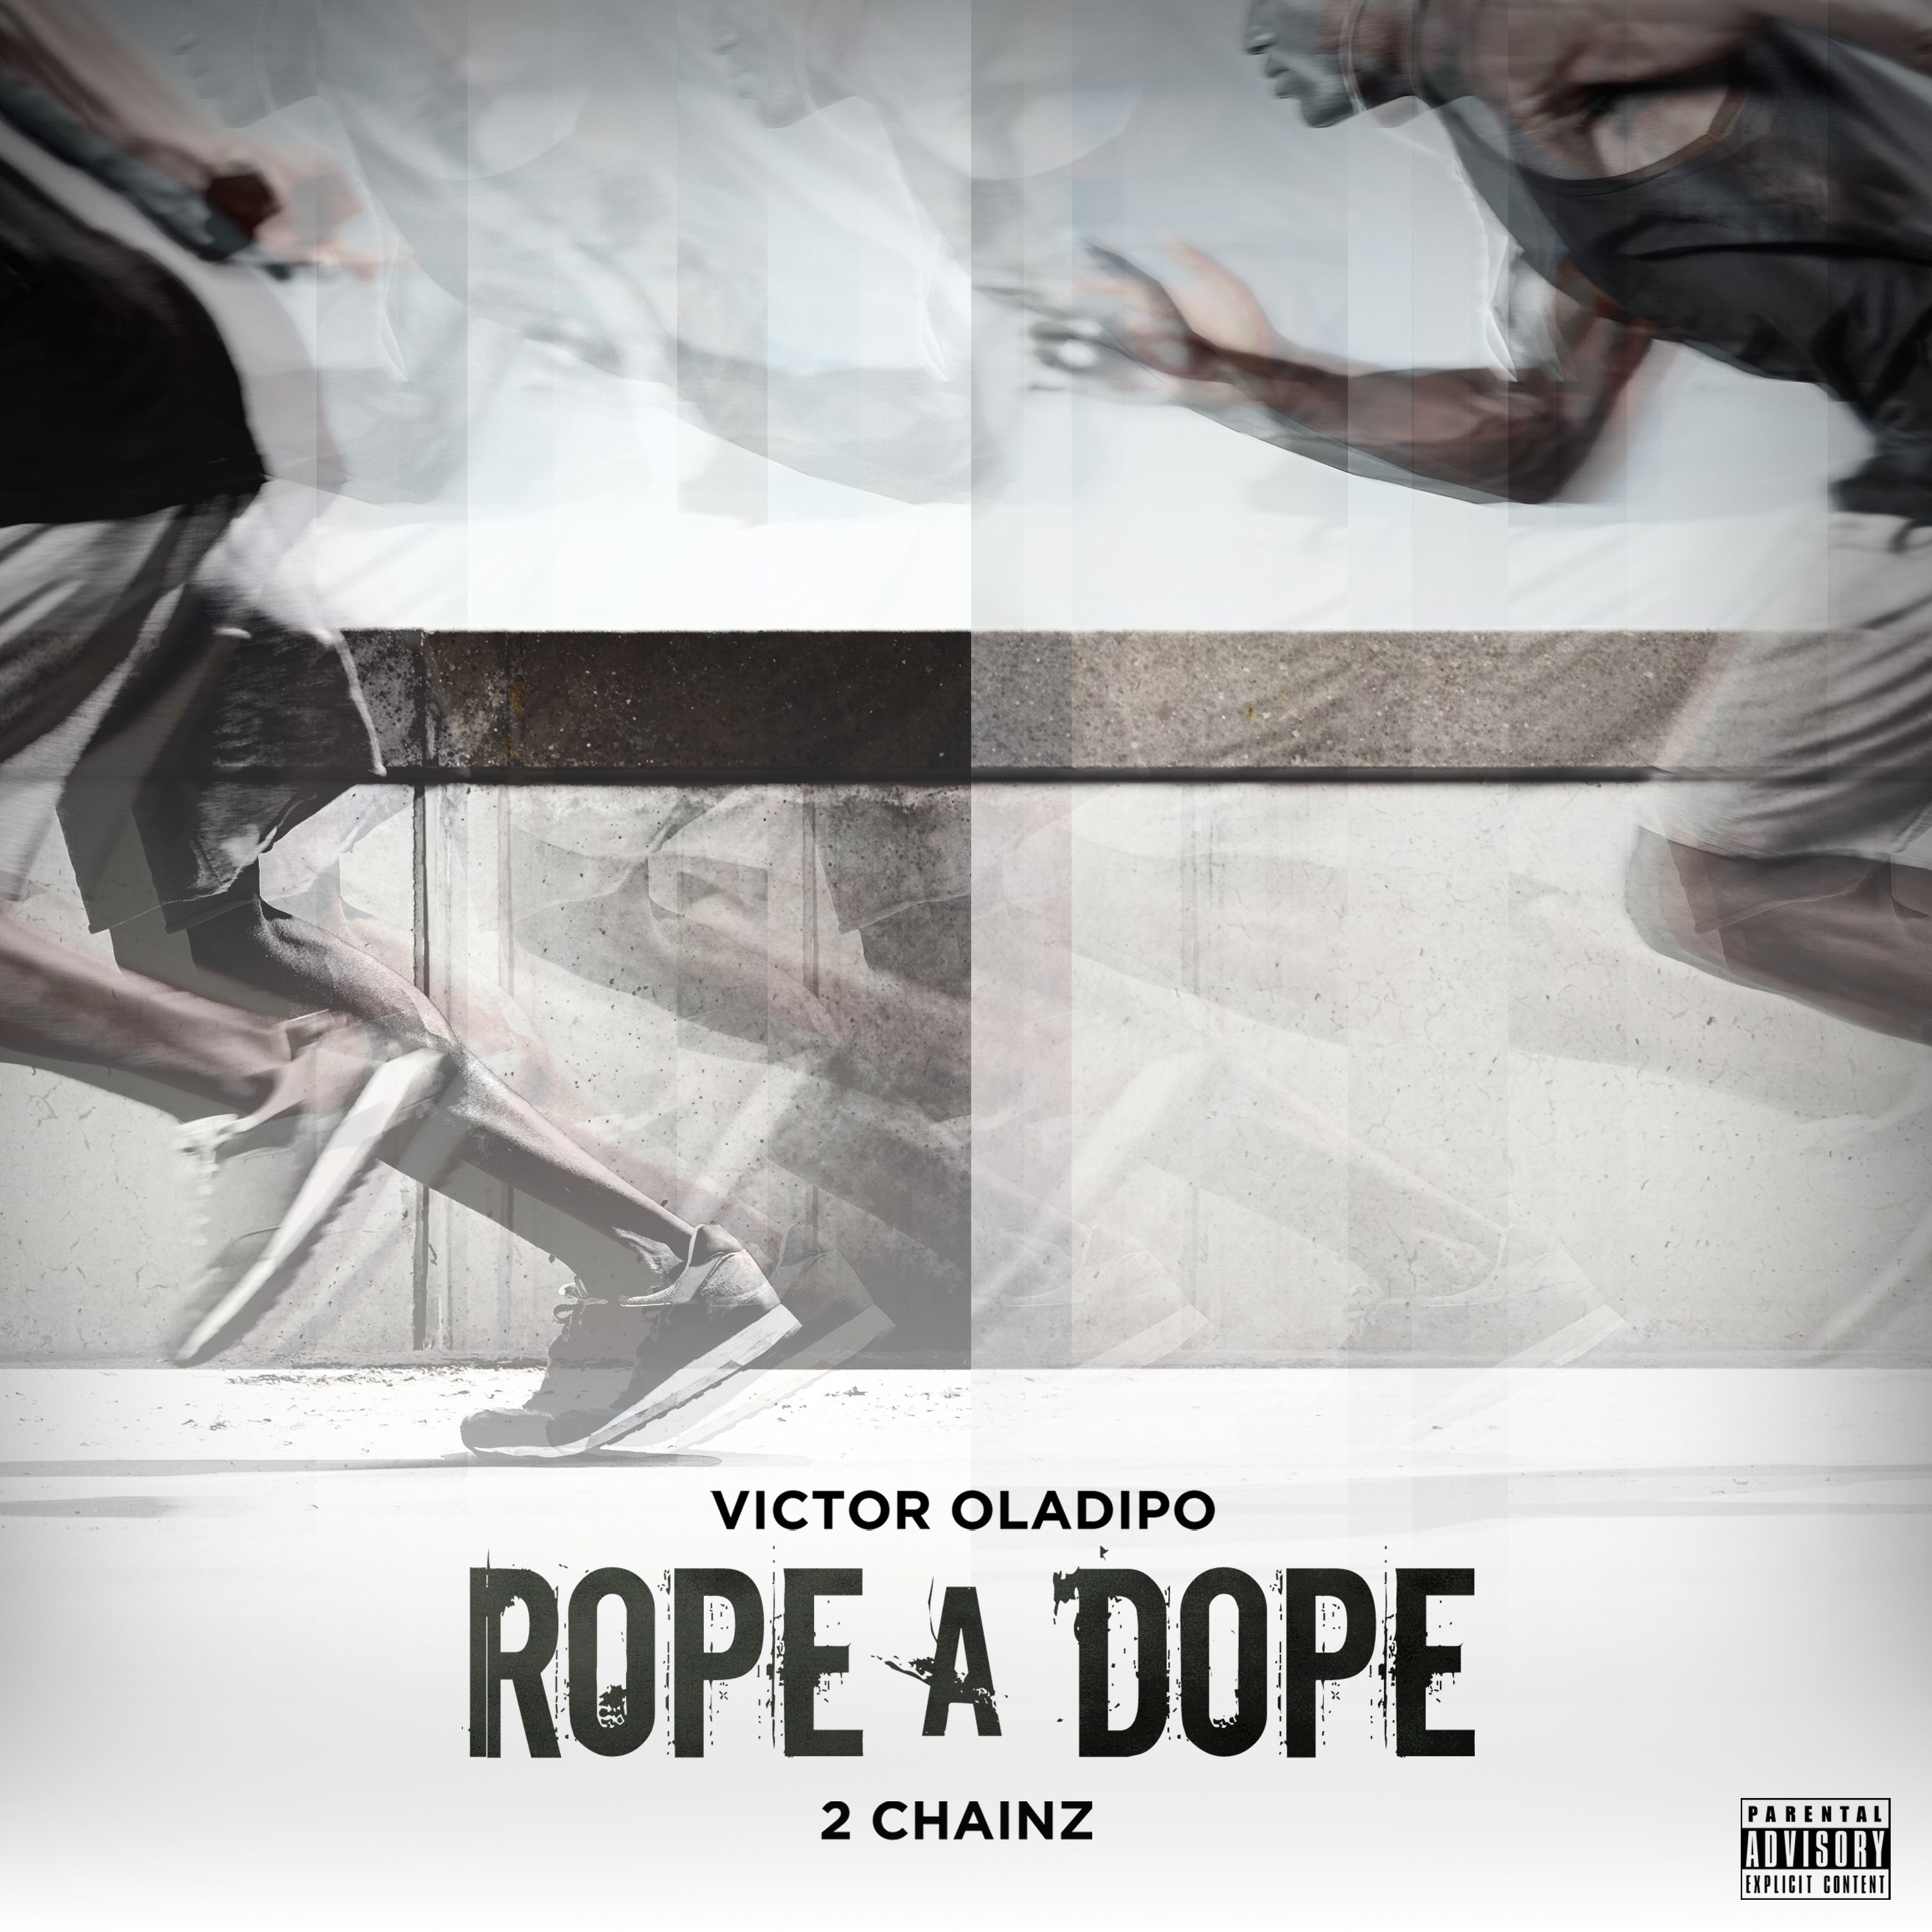 Victor Oladipo – Rope a Dope (feat. 2 Chainz)